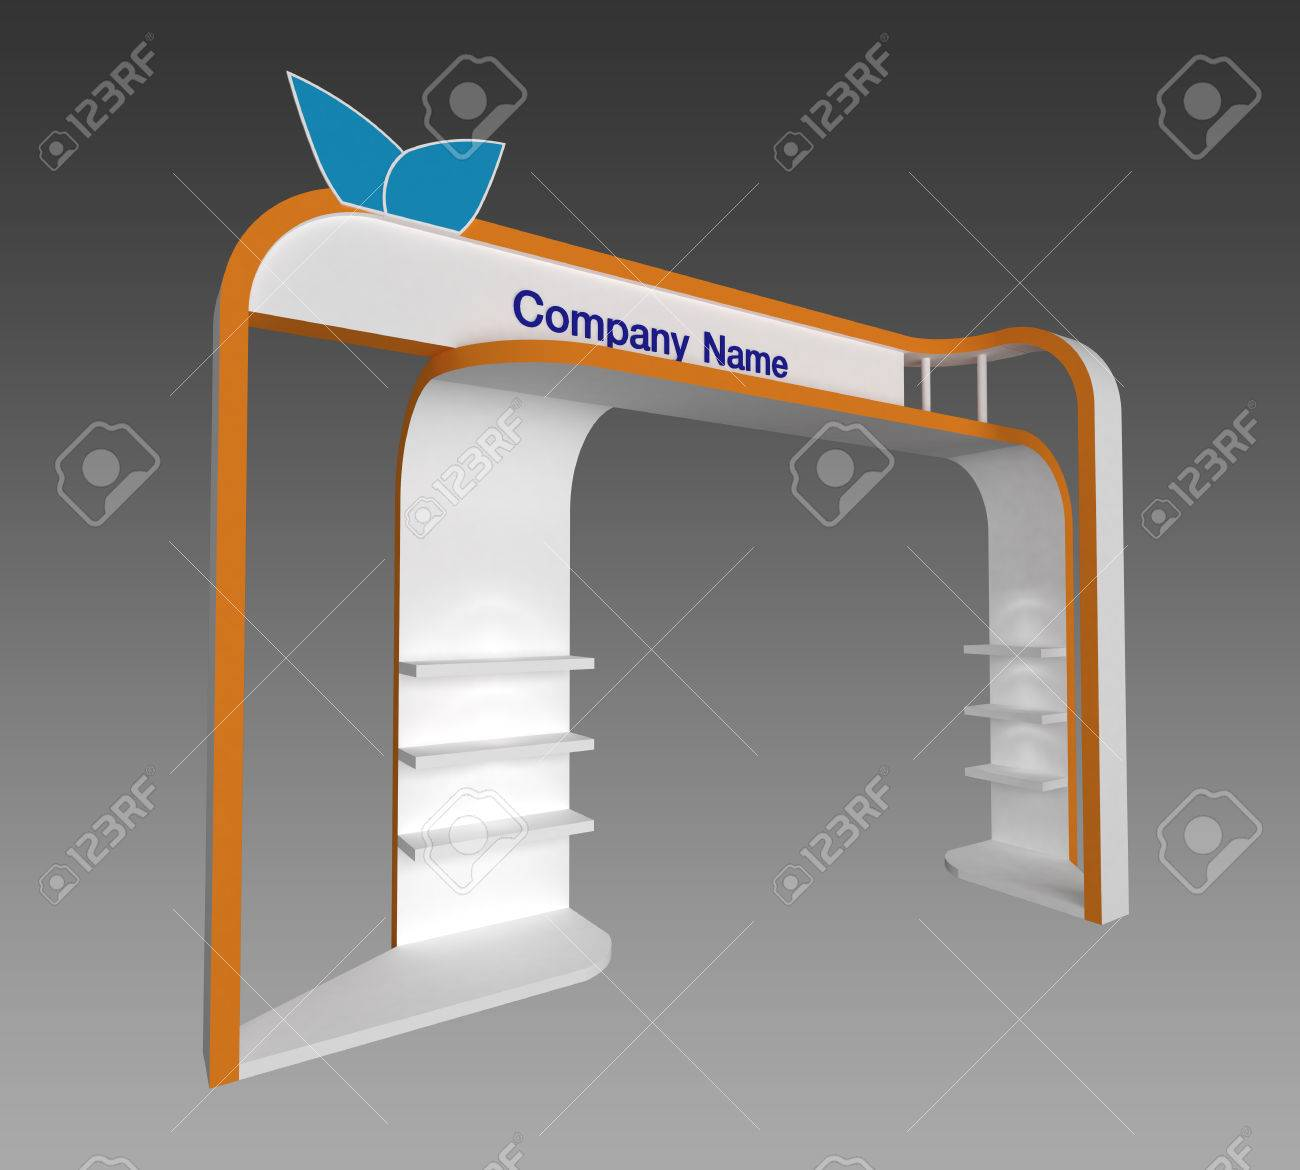 3d Exhibition Stand Design Software Free Download : Exhibition stand d model mtr mtr sides open